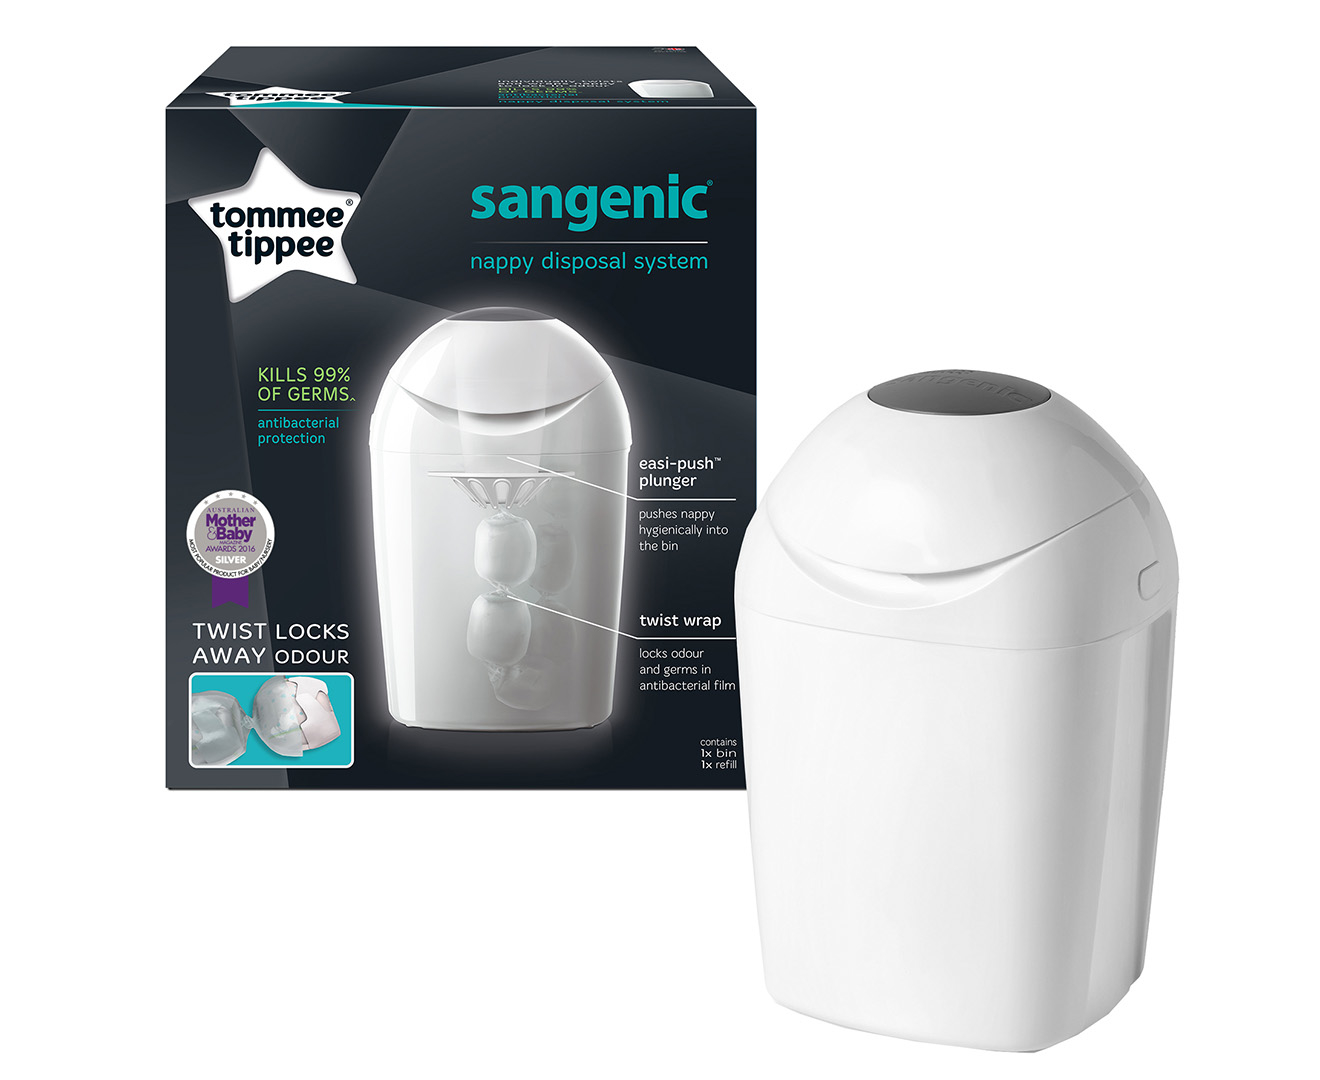 buy tommee tippee sangenic nappy disposal system at mighty ape australia. Black Bedroom Furniture Sets. Home Design Ideas